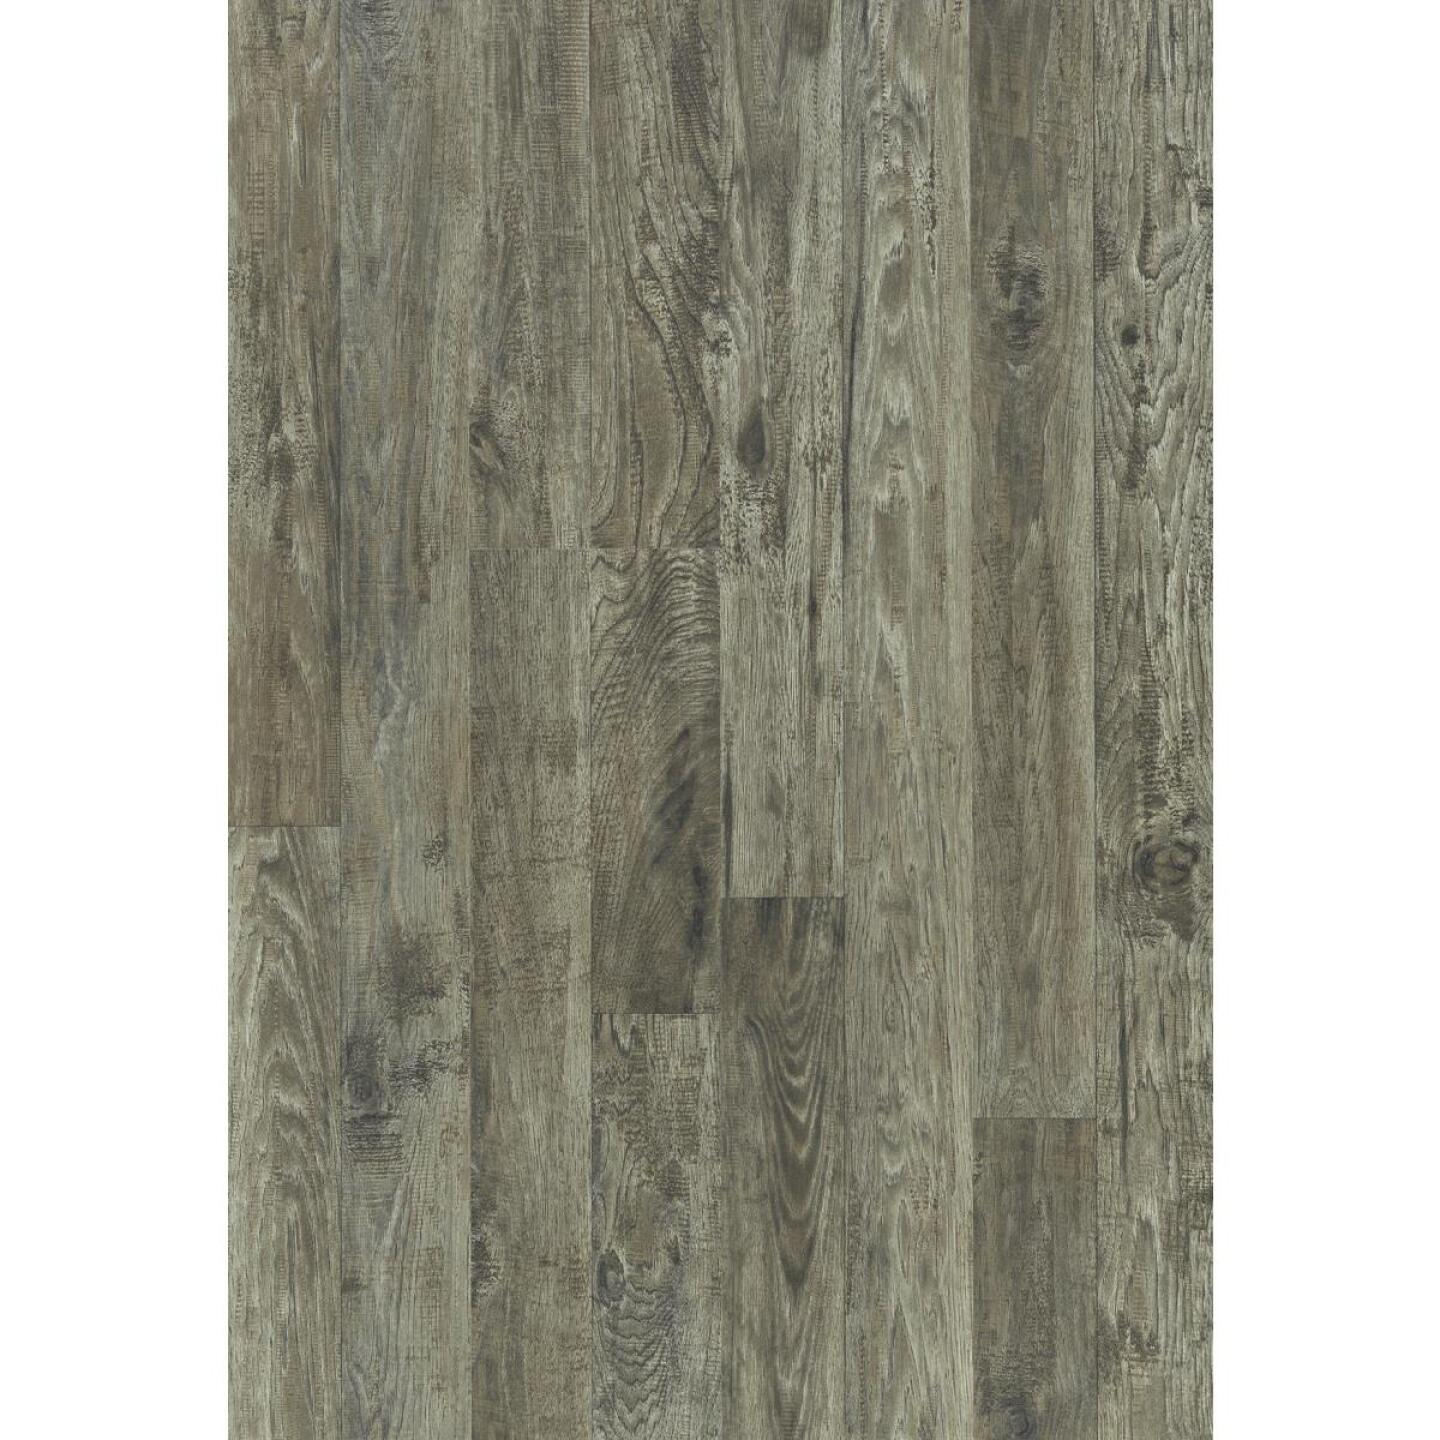 Shaw Classic Vintage Quaint Hickory 7-1/2 In. W x 50-3/4 In. L Laminate Flooring (26.8 Sq. Ft./Case) Image 1